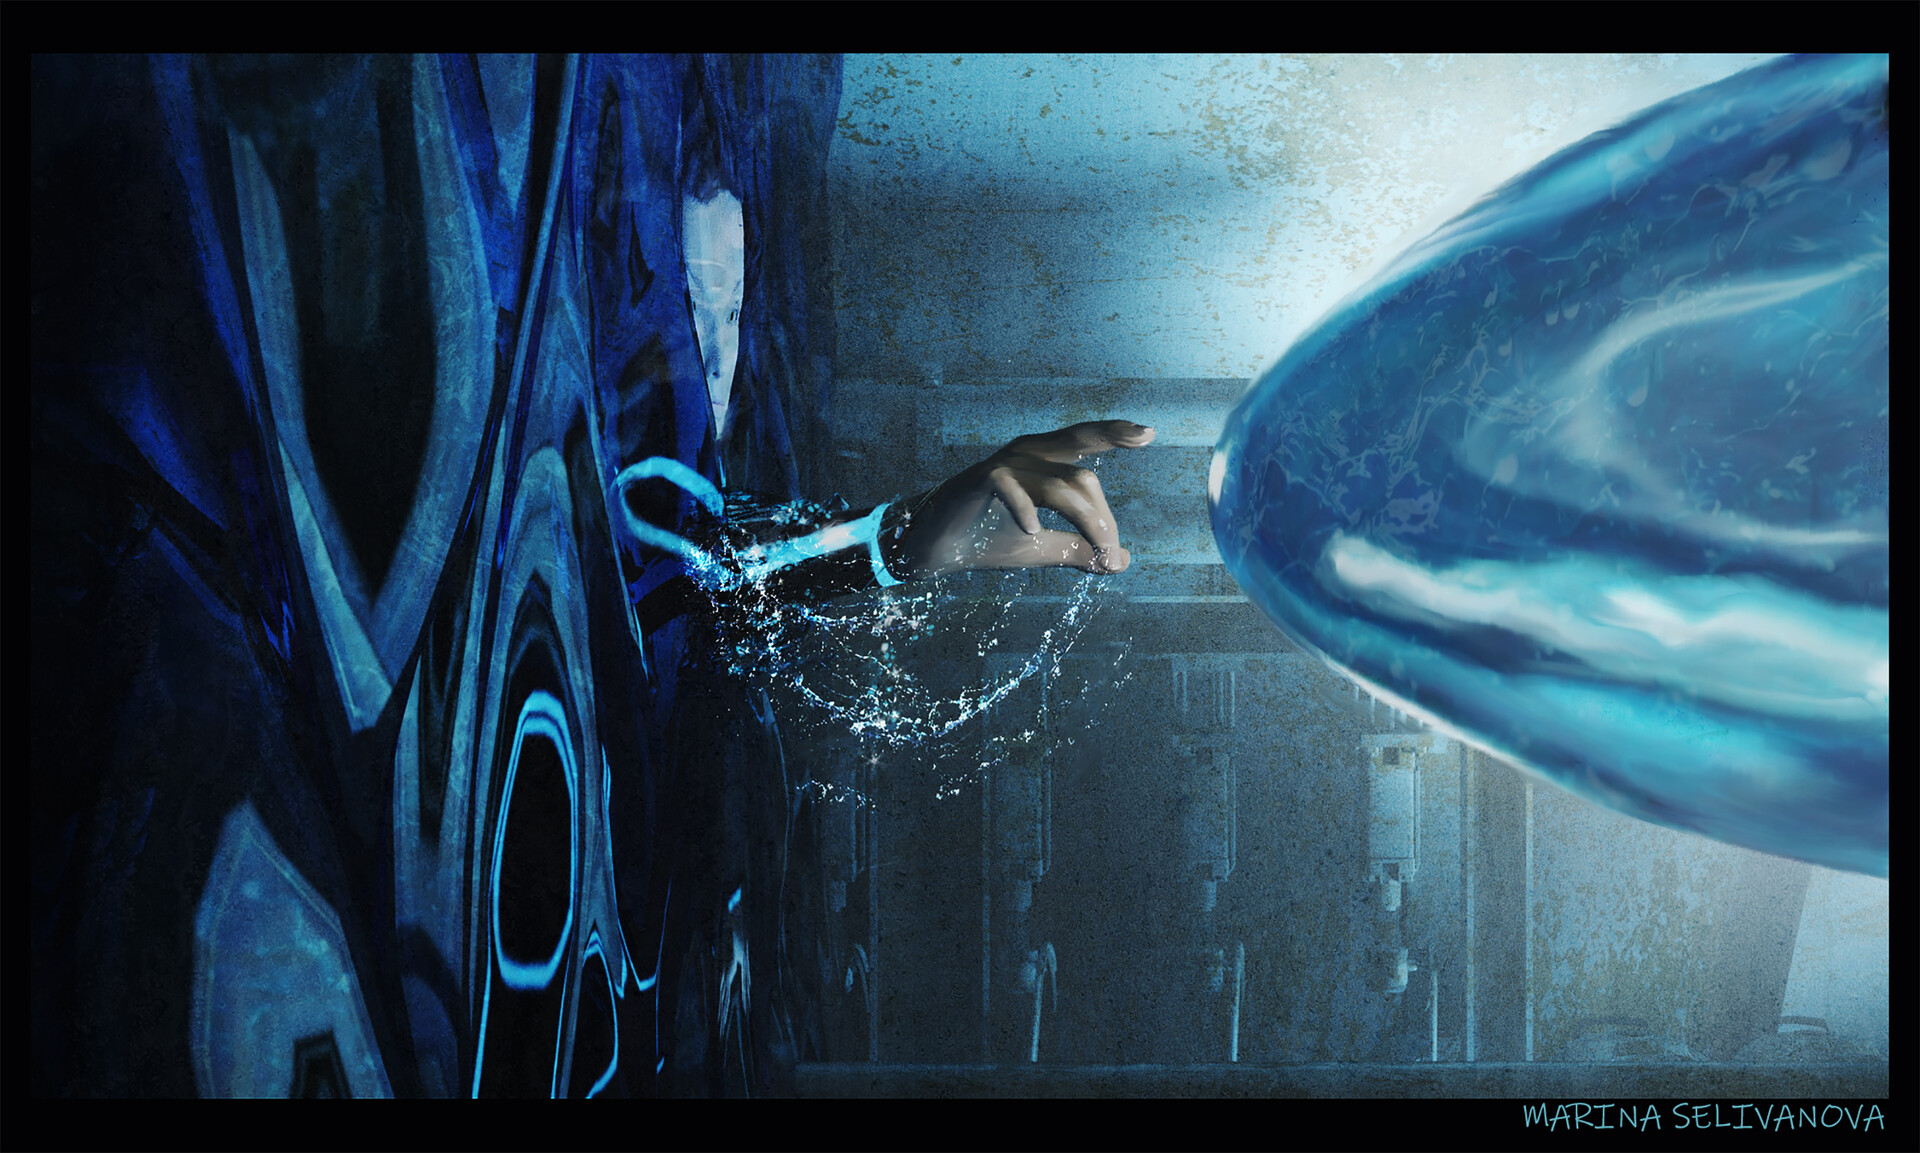 Alien being stops the water. Behind the wall of water remained the heroine who wants to touch the creature.